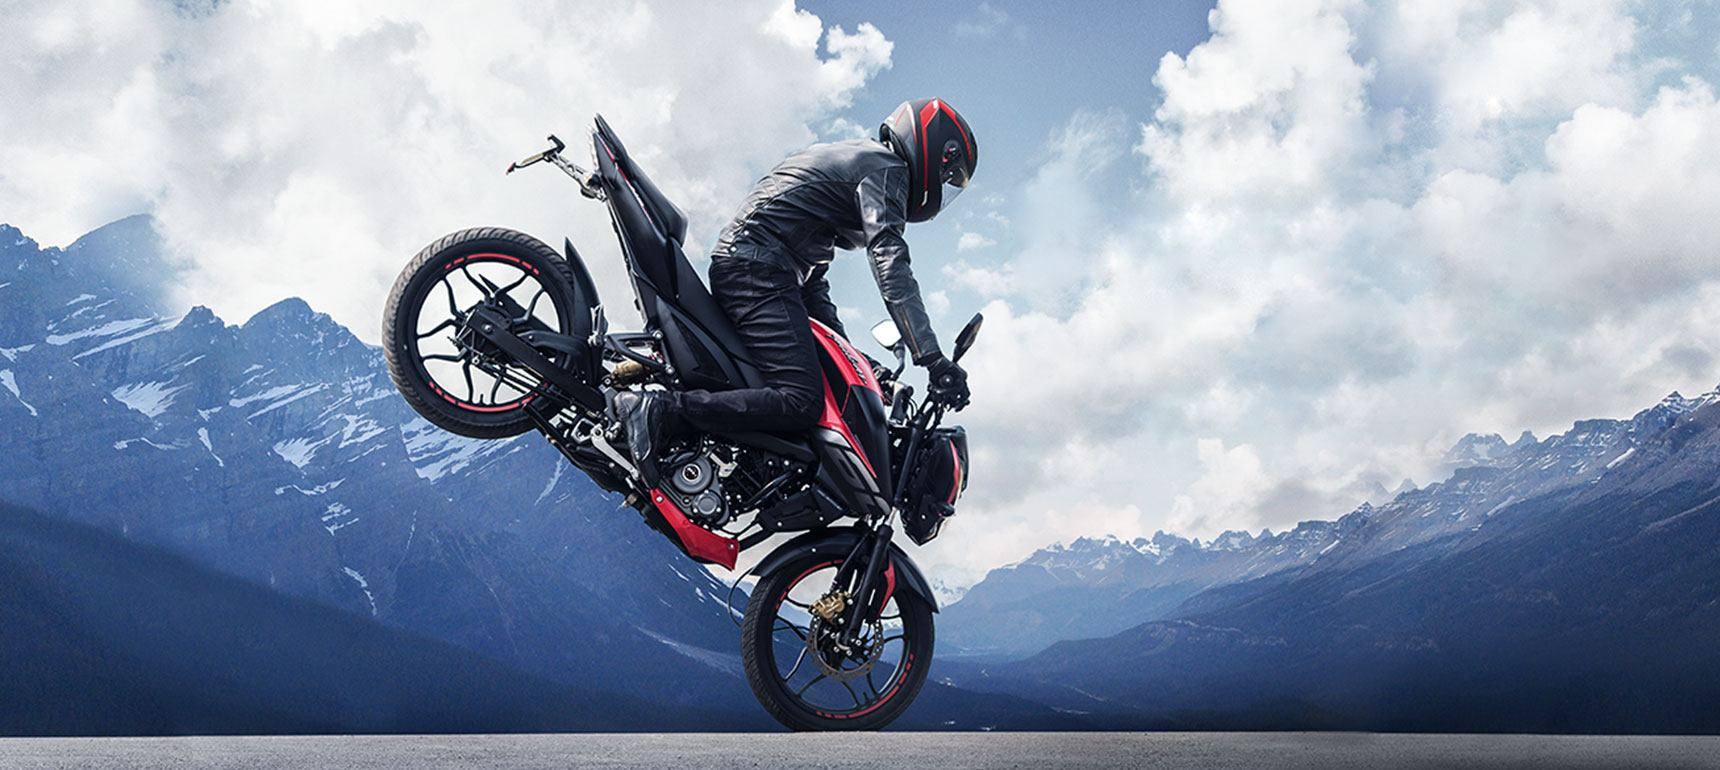 A biker is making stunt with black and red color bajaj Pulsar NS 160 Twin Disk Motorcycle wearing black leather jacket and helmet